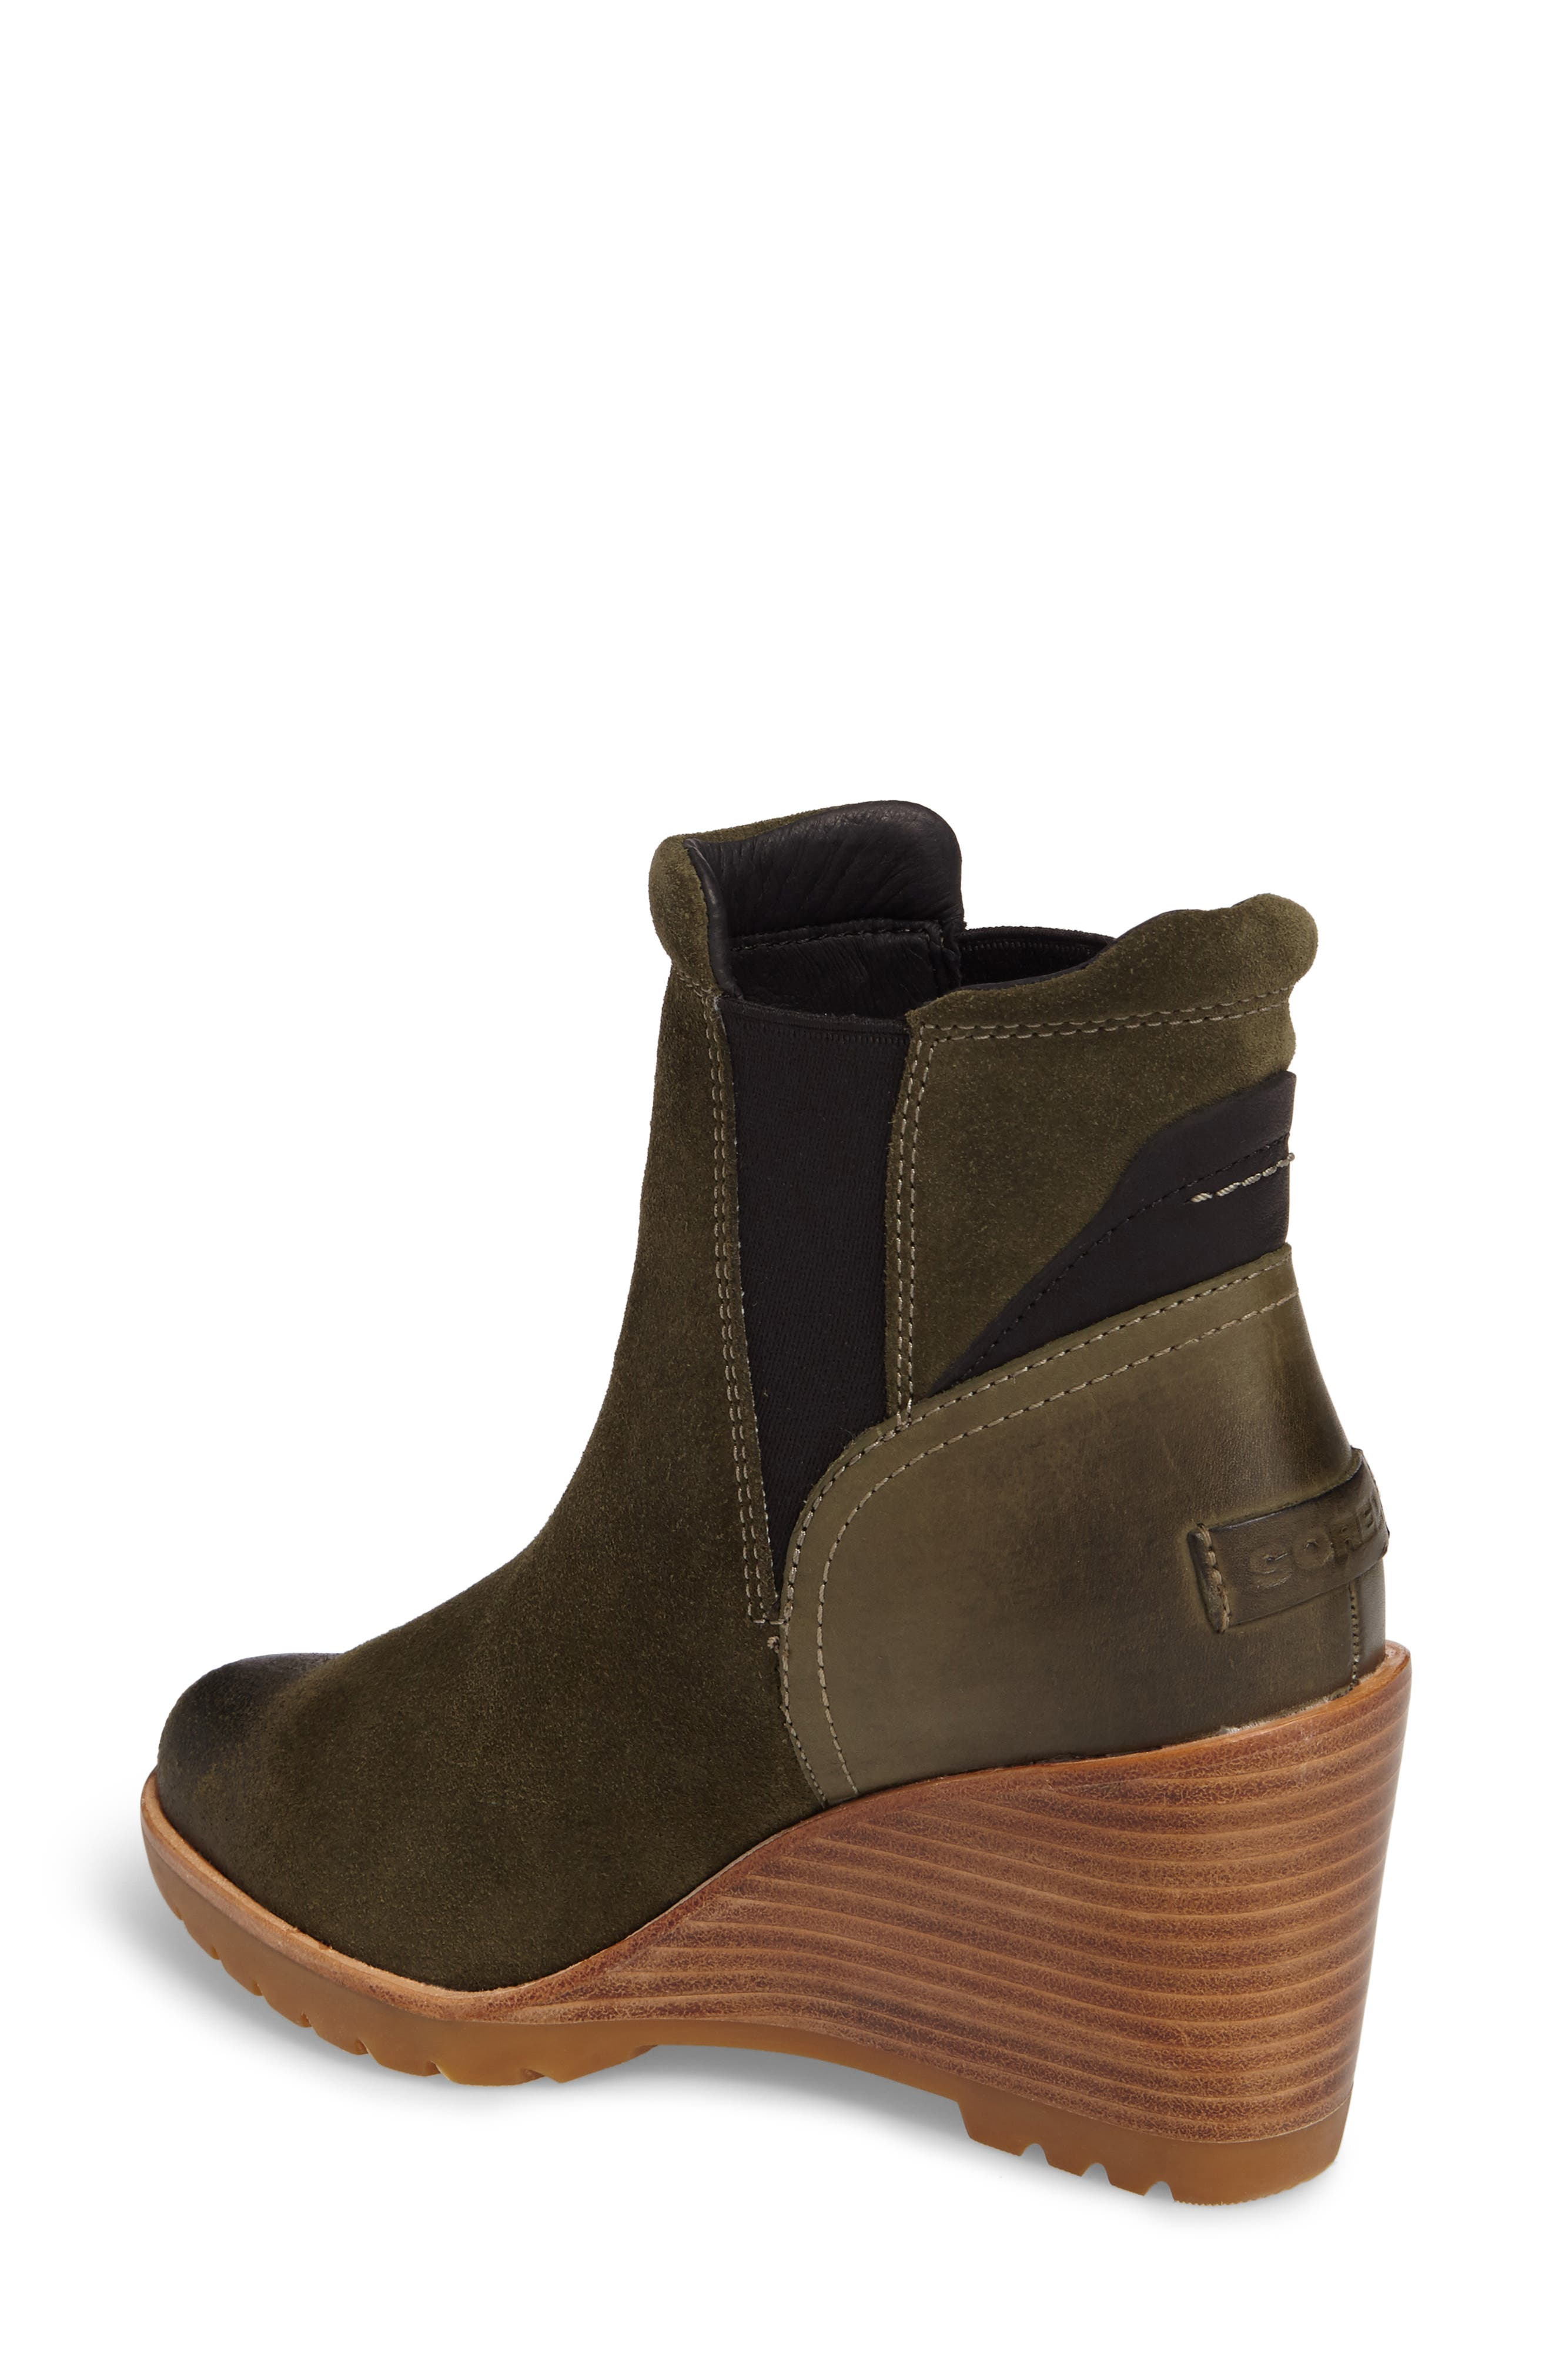 After Hours Chelsea Boot,                             Alternate thumbnail 10, color,